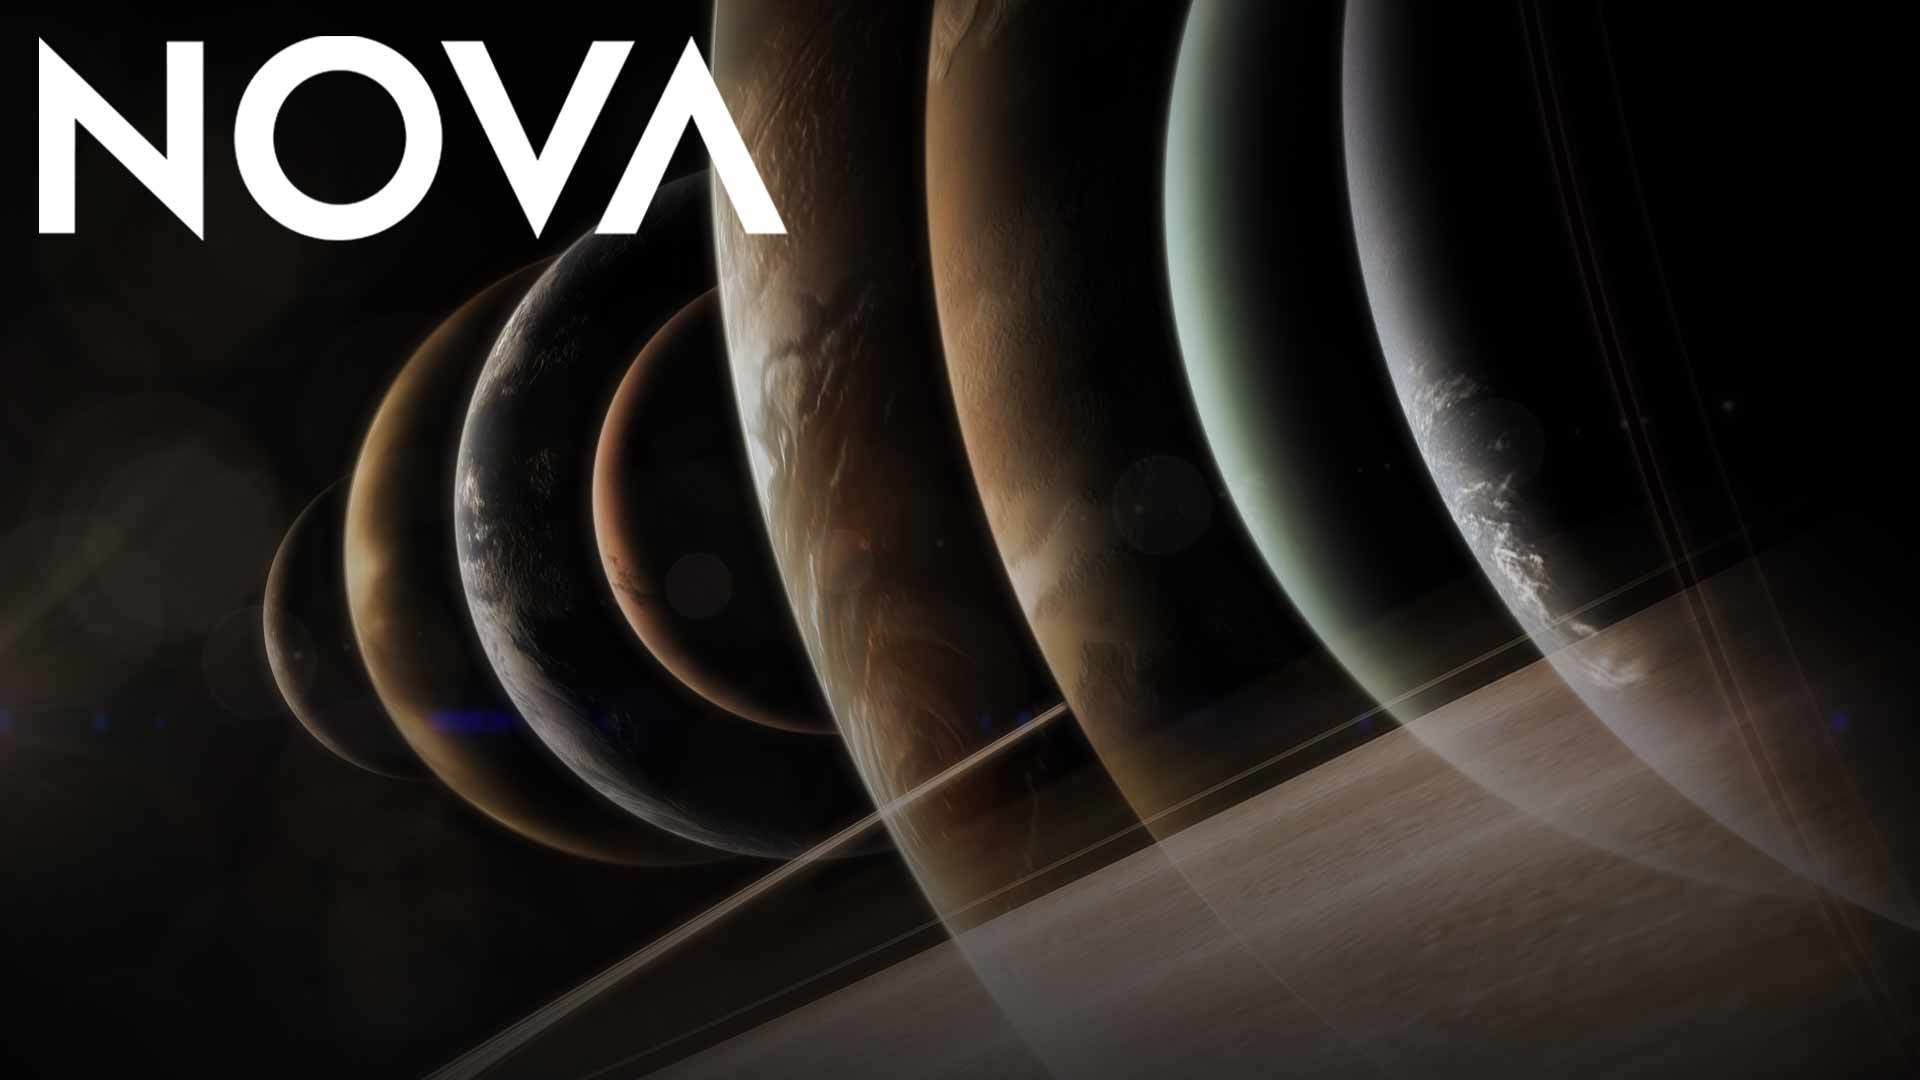 Image from NOVA: The Planets